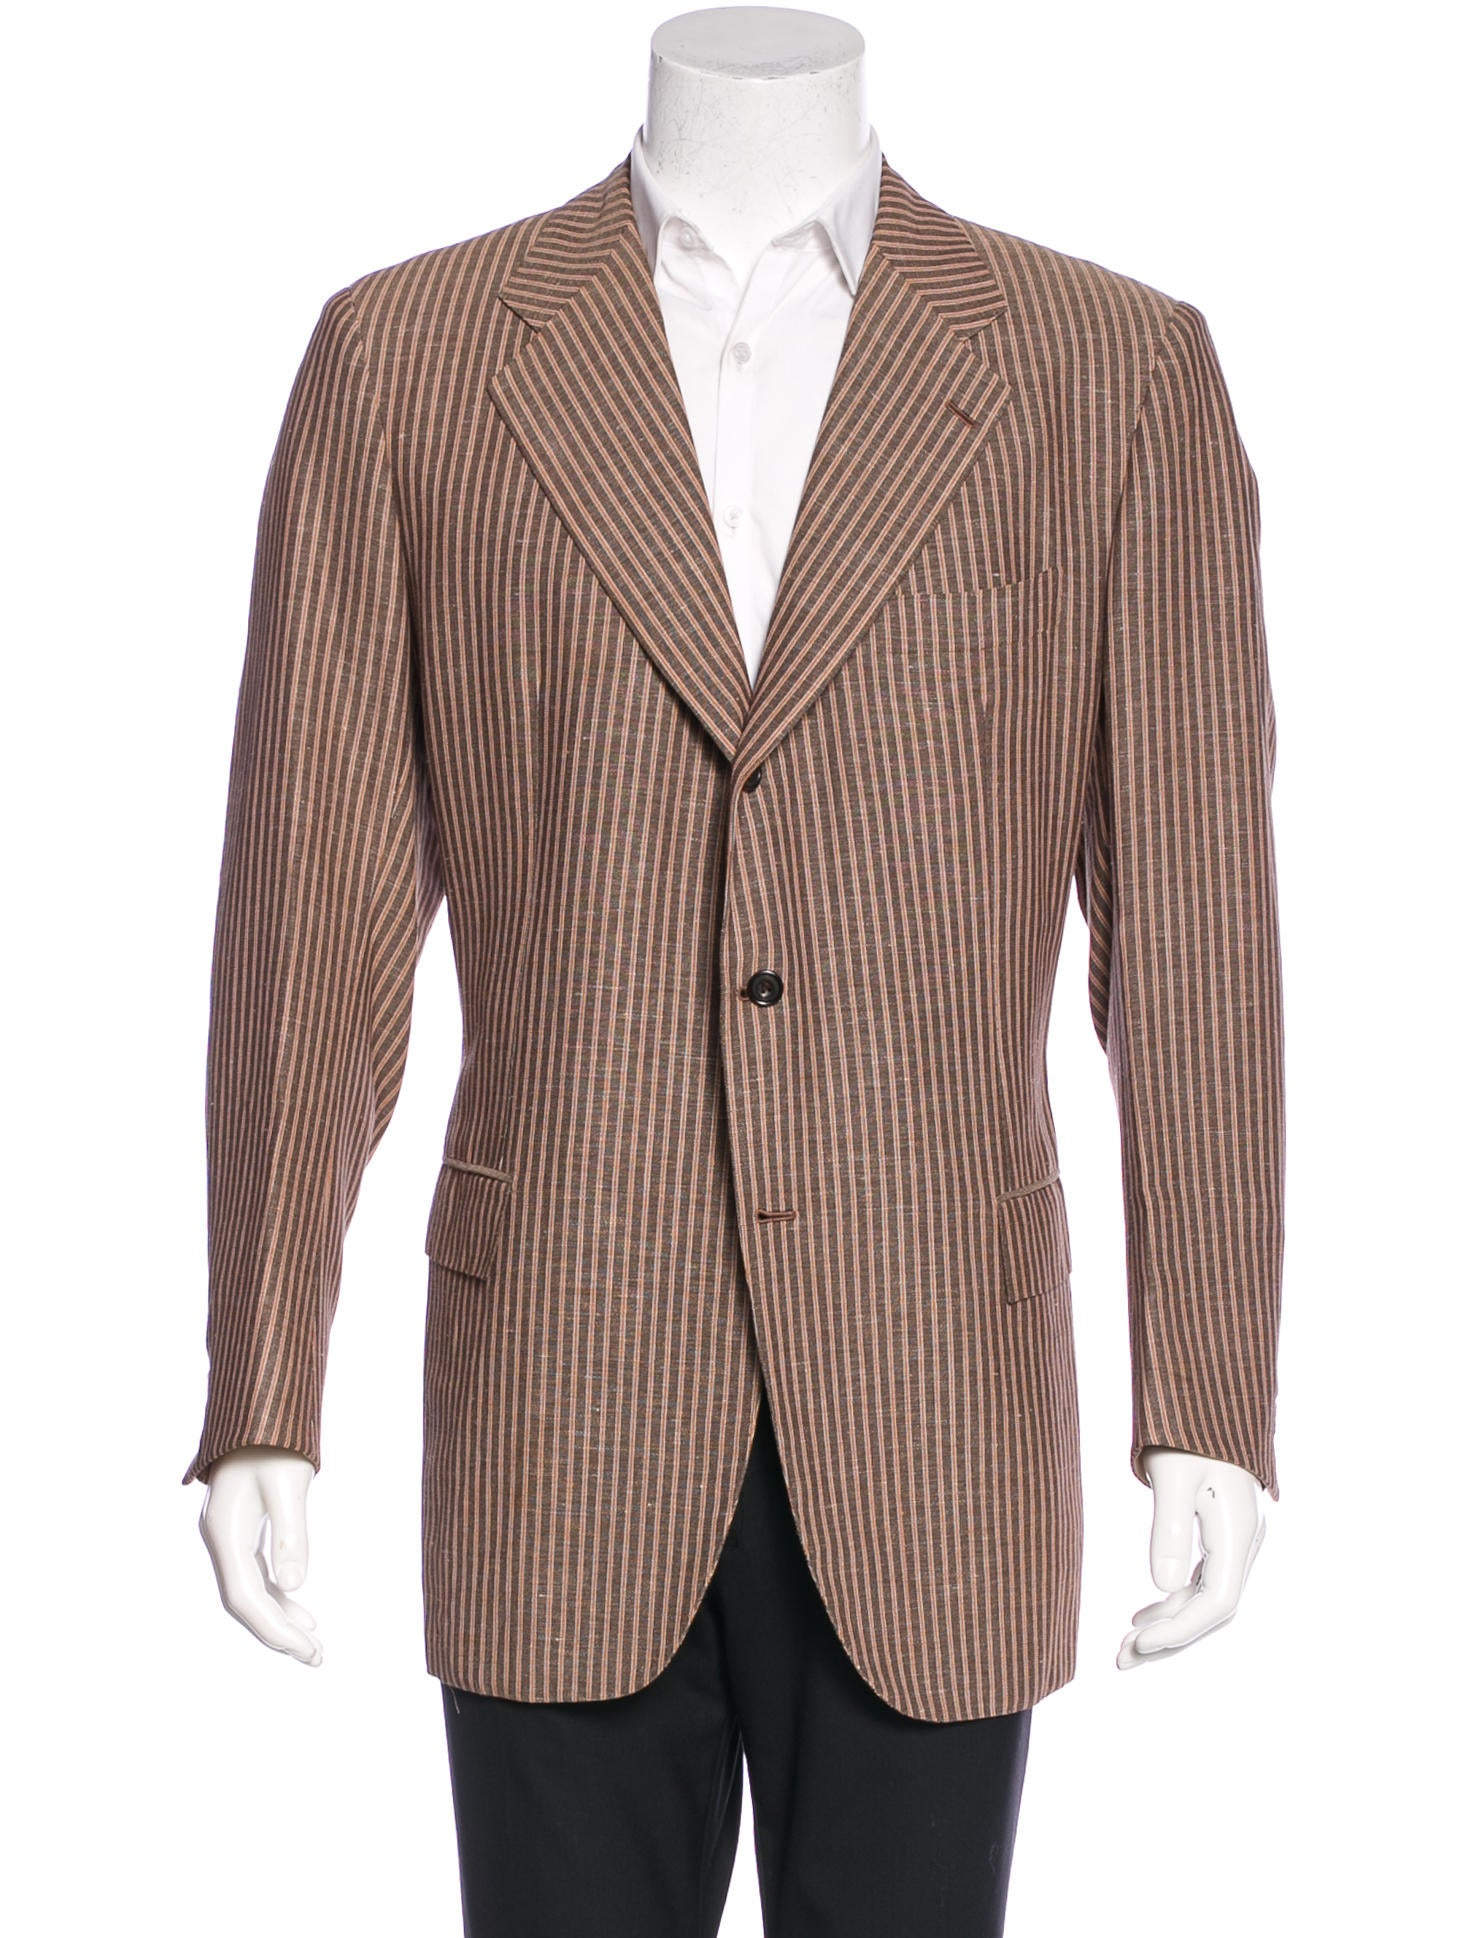 ★ Ted Baker London Trim Fit Plaid Wool Sport Coat @ Up To 70% Mens Blazers Amp Sport Coats, Find great deals on the latest styles Compare prices & save money [TED BAKER LONDON TRIM FIT PLAID WOOL SPORT COAT] Shop online for shoes, clothing, Makeup, Dresses and more from top brands. Huge Sale CHECK NOW!.